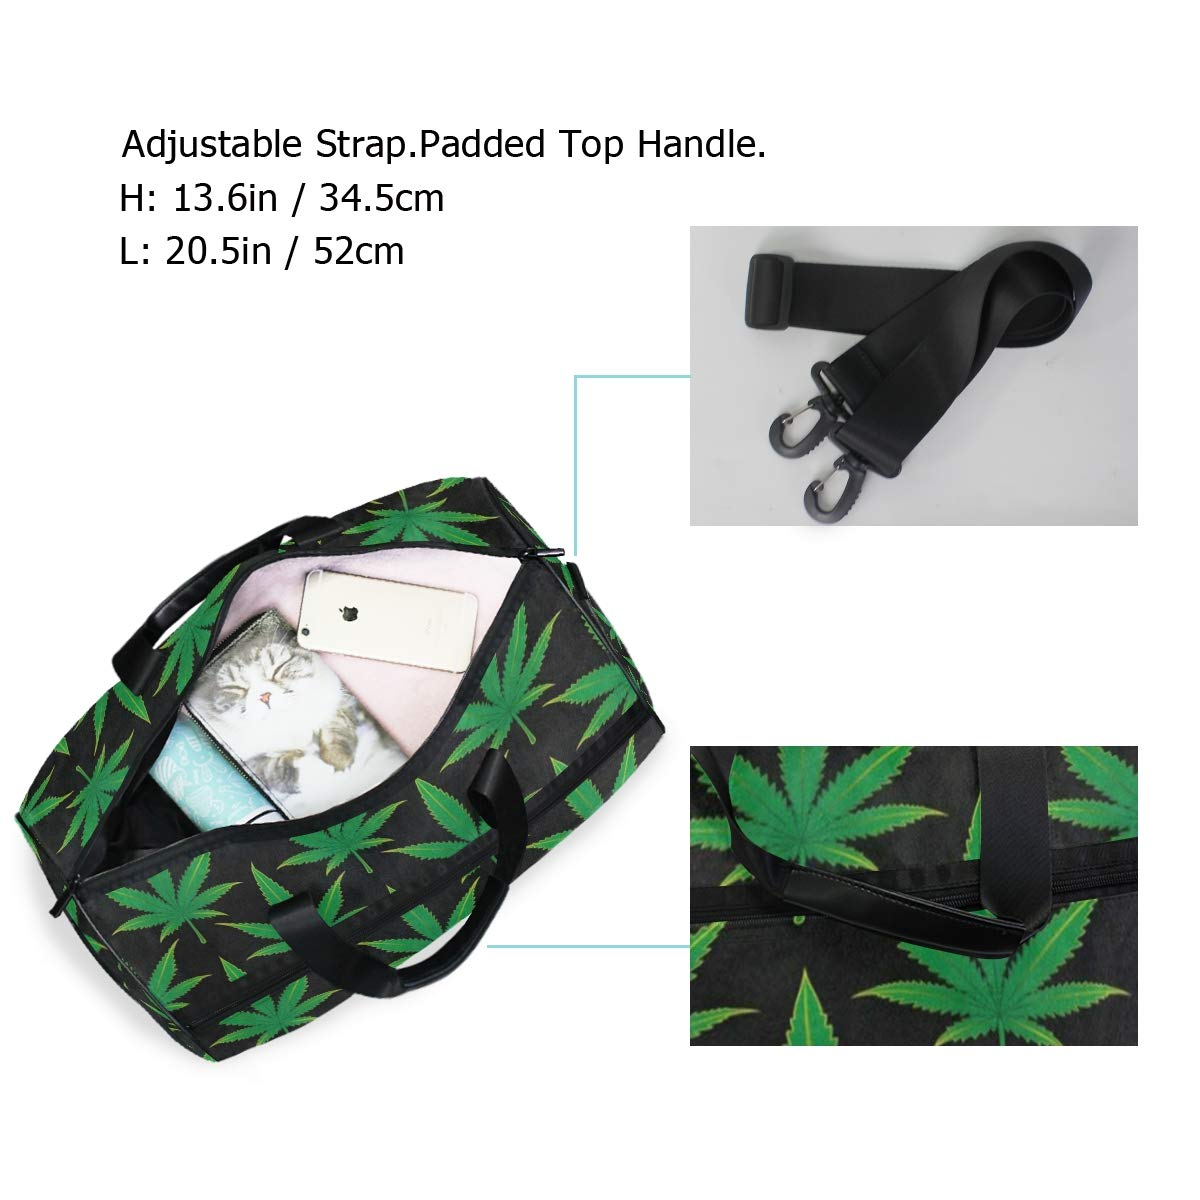 Cannabis Mariguana Leaf Large Canvas shoulder bag with Shoe Compartment Travel Tote Luggage Weekender Duffle Bag